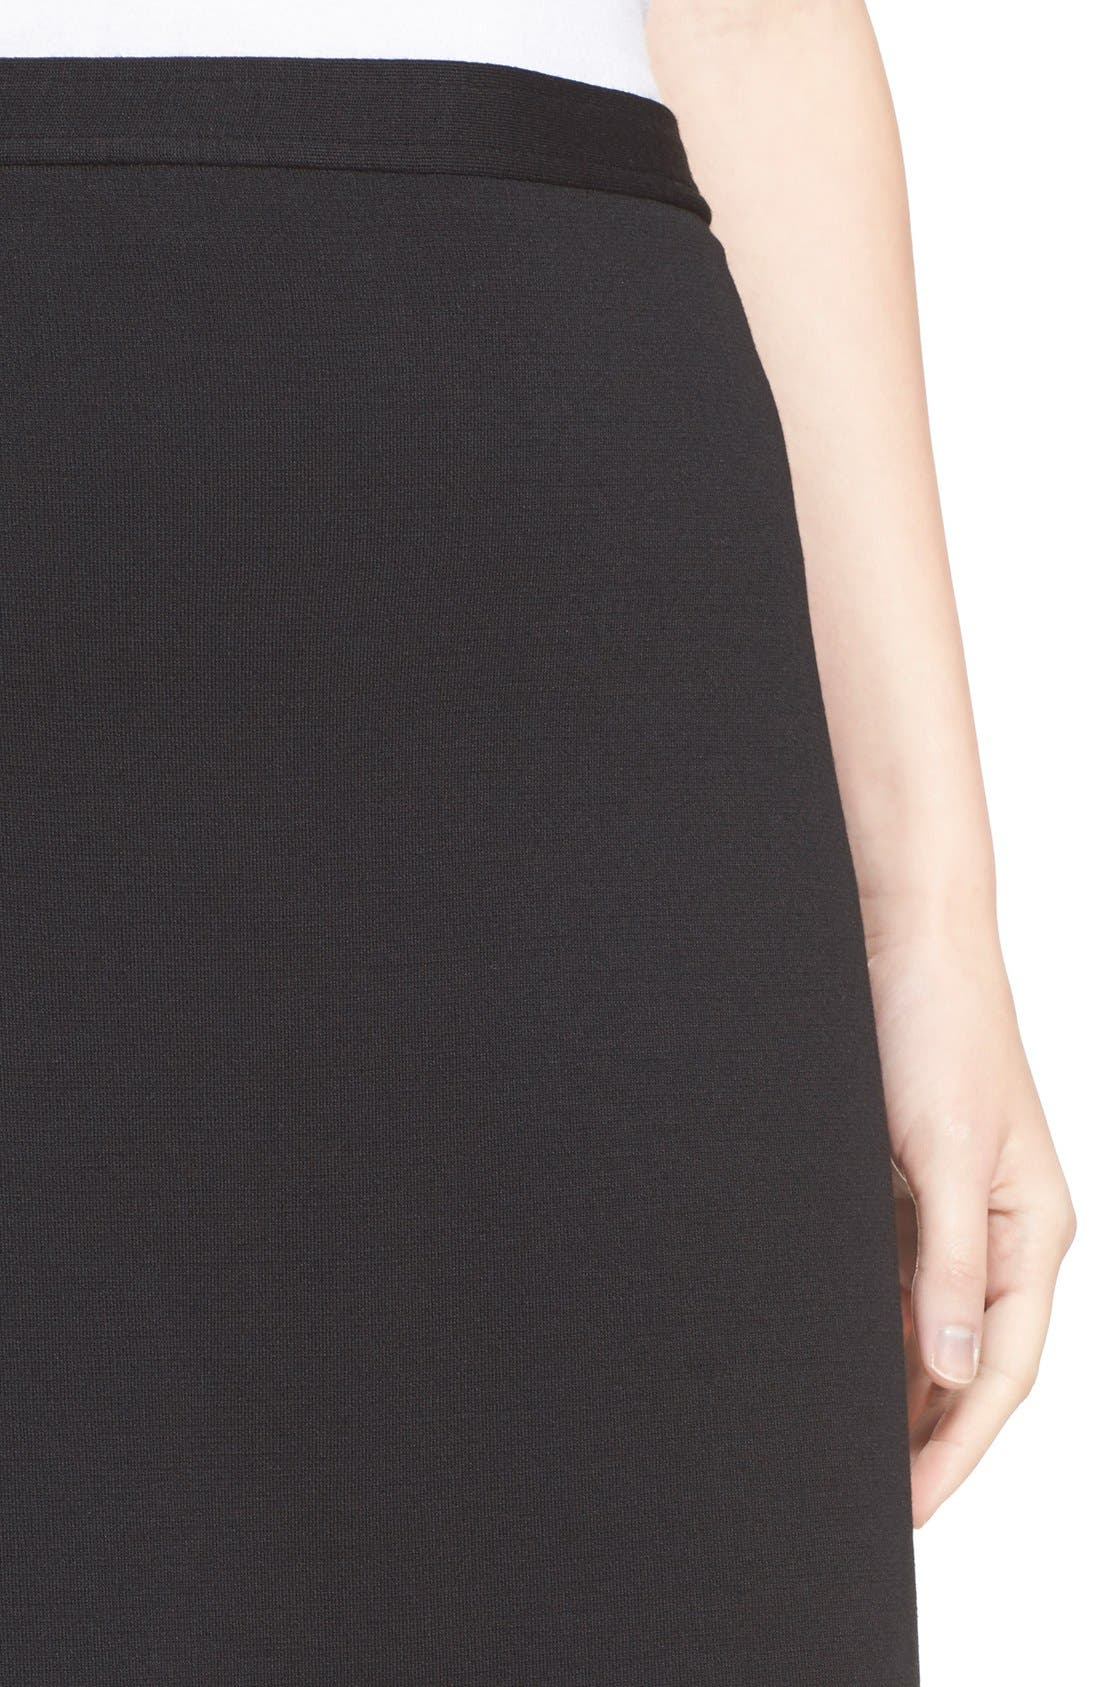 Milano Knit Pencil Skirt,                             Alternate thumbnail 6, color,                             CAVIAR